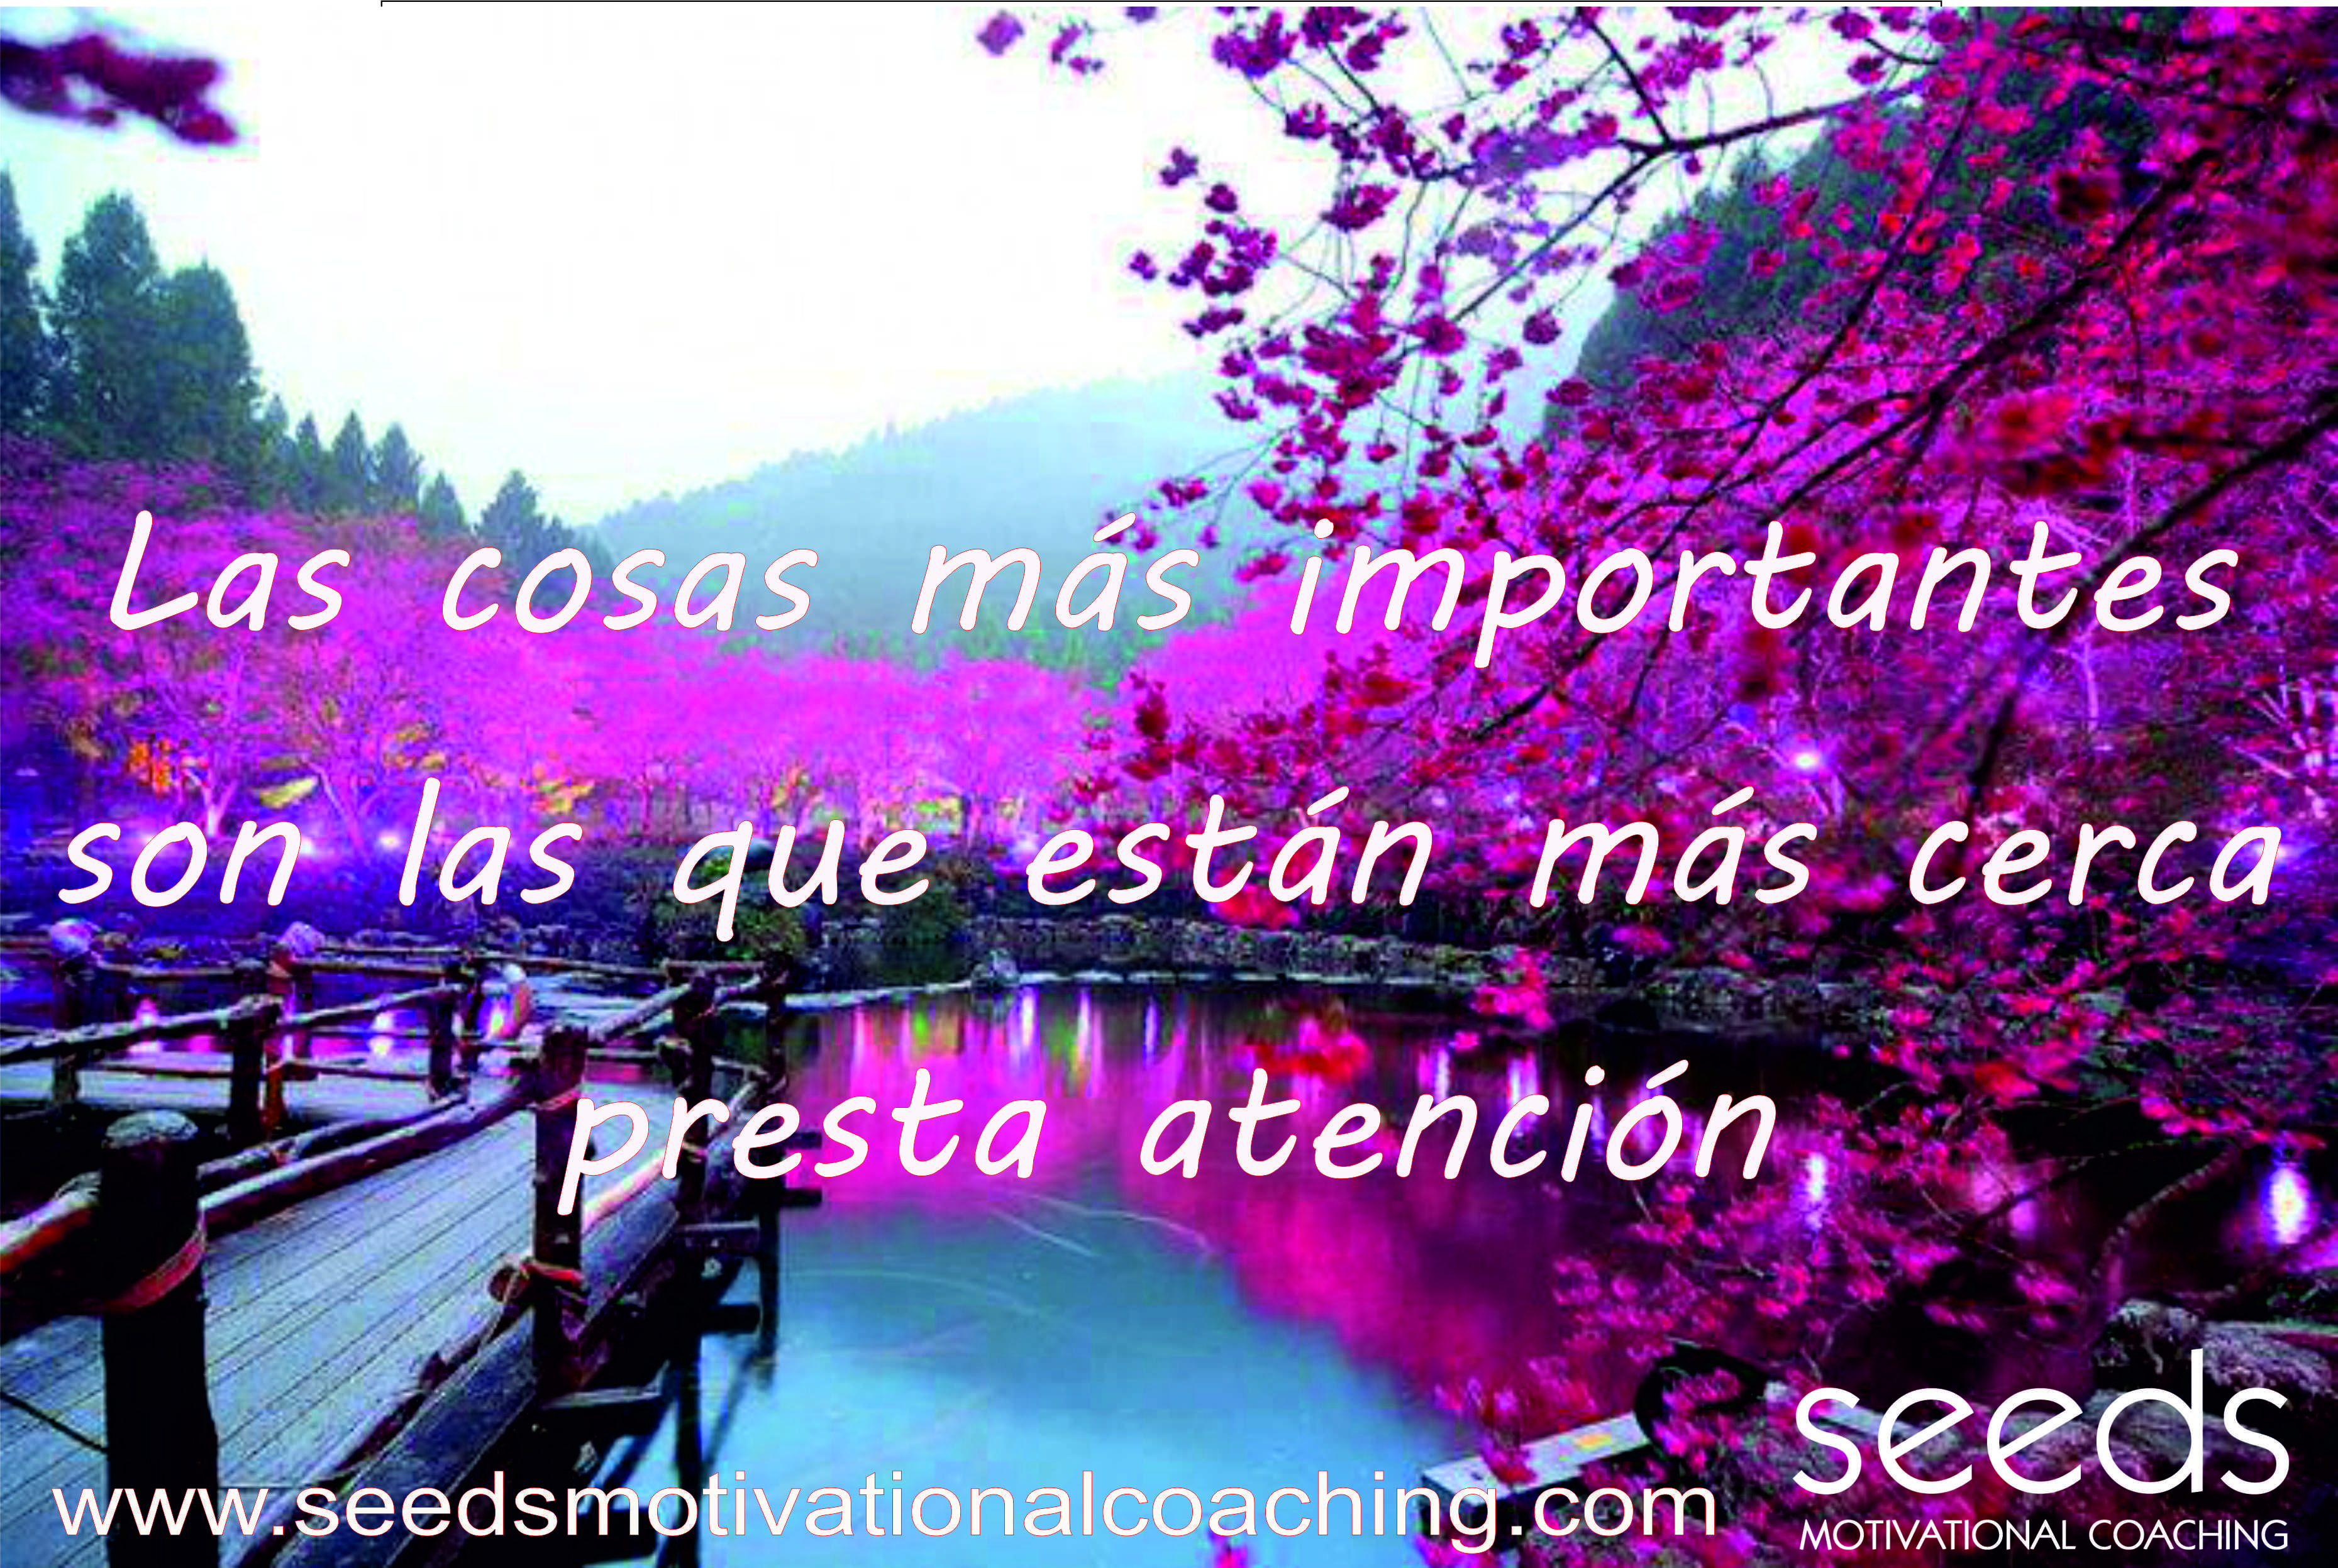 Most important things are closest to you, keep atention. #Coaching